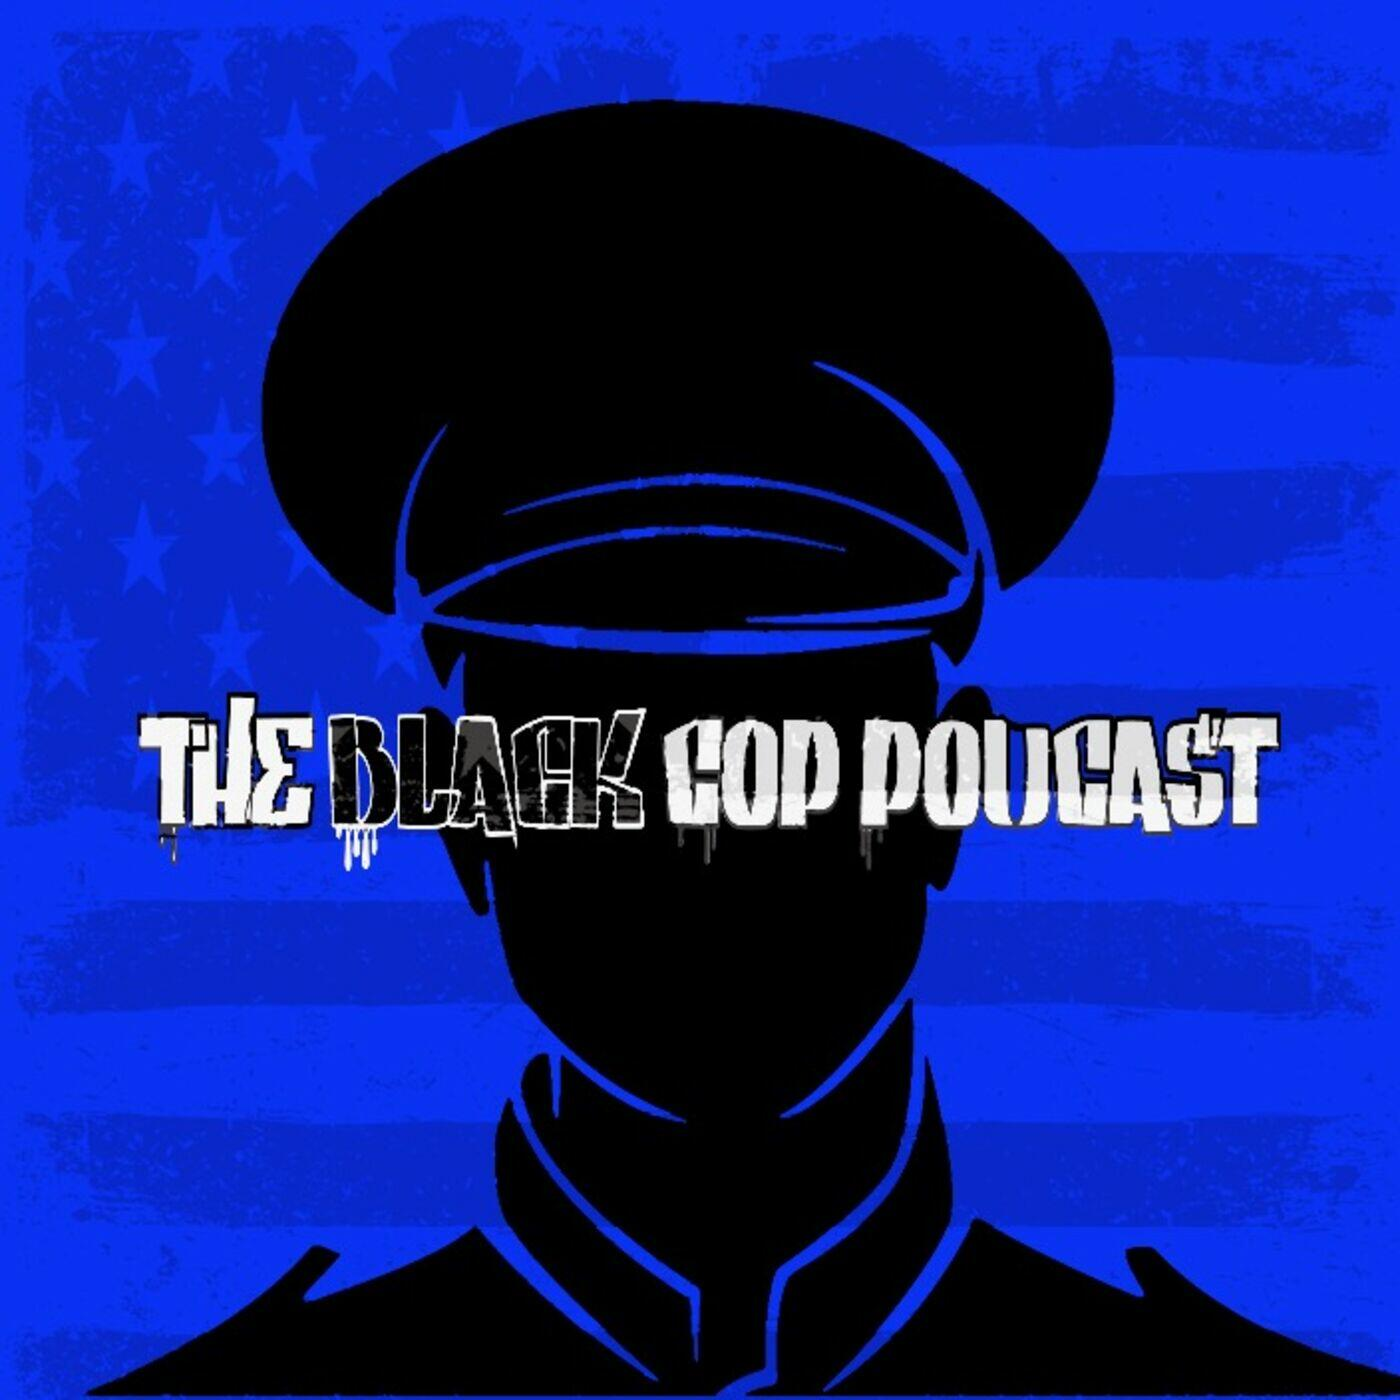 The Black Cop Podcast